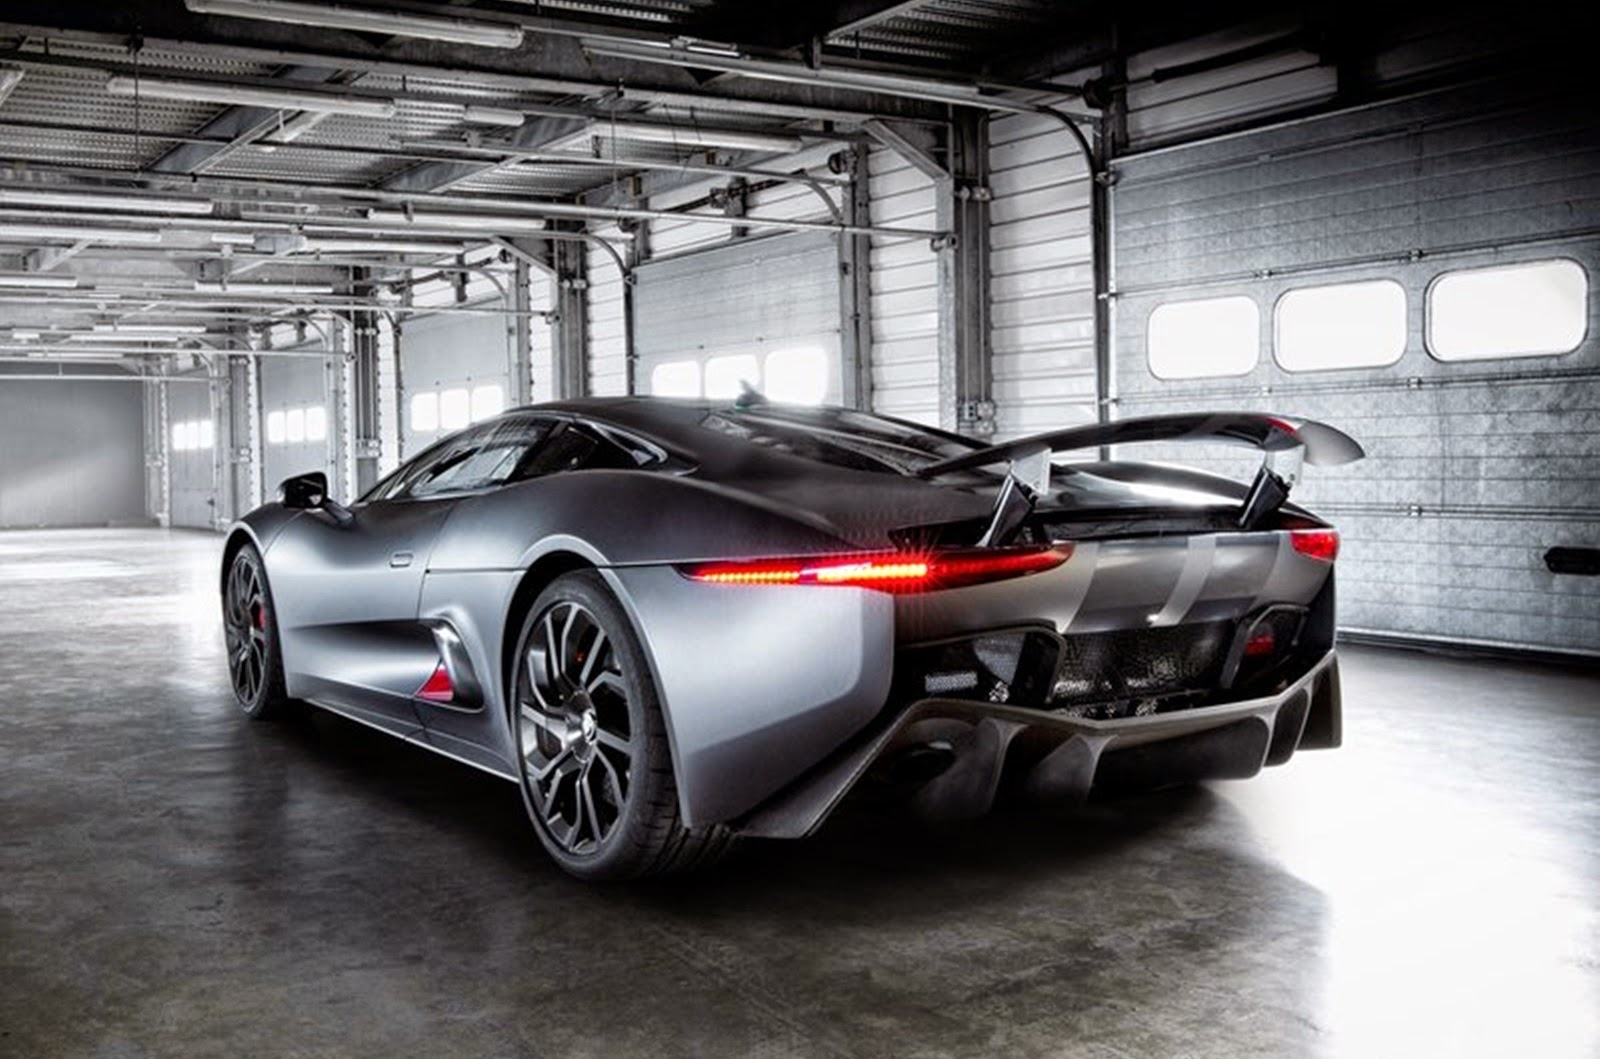 Carrosport1 Carro Jaguar C X75 Concept 2013 Wallpaper